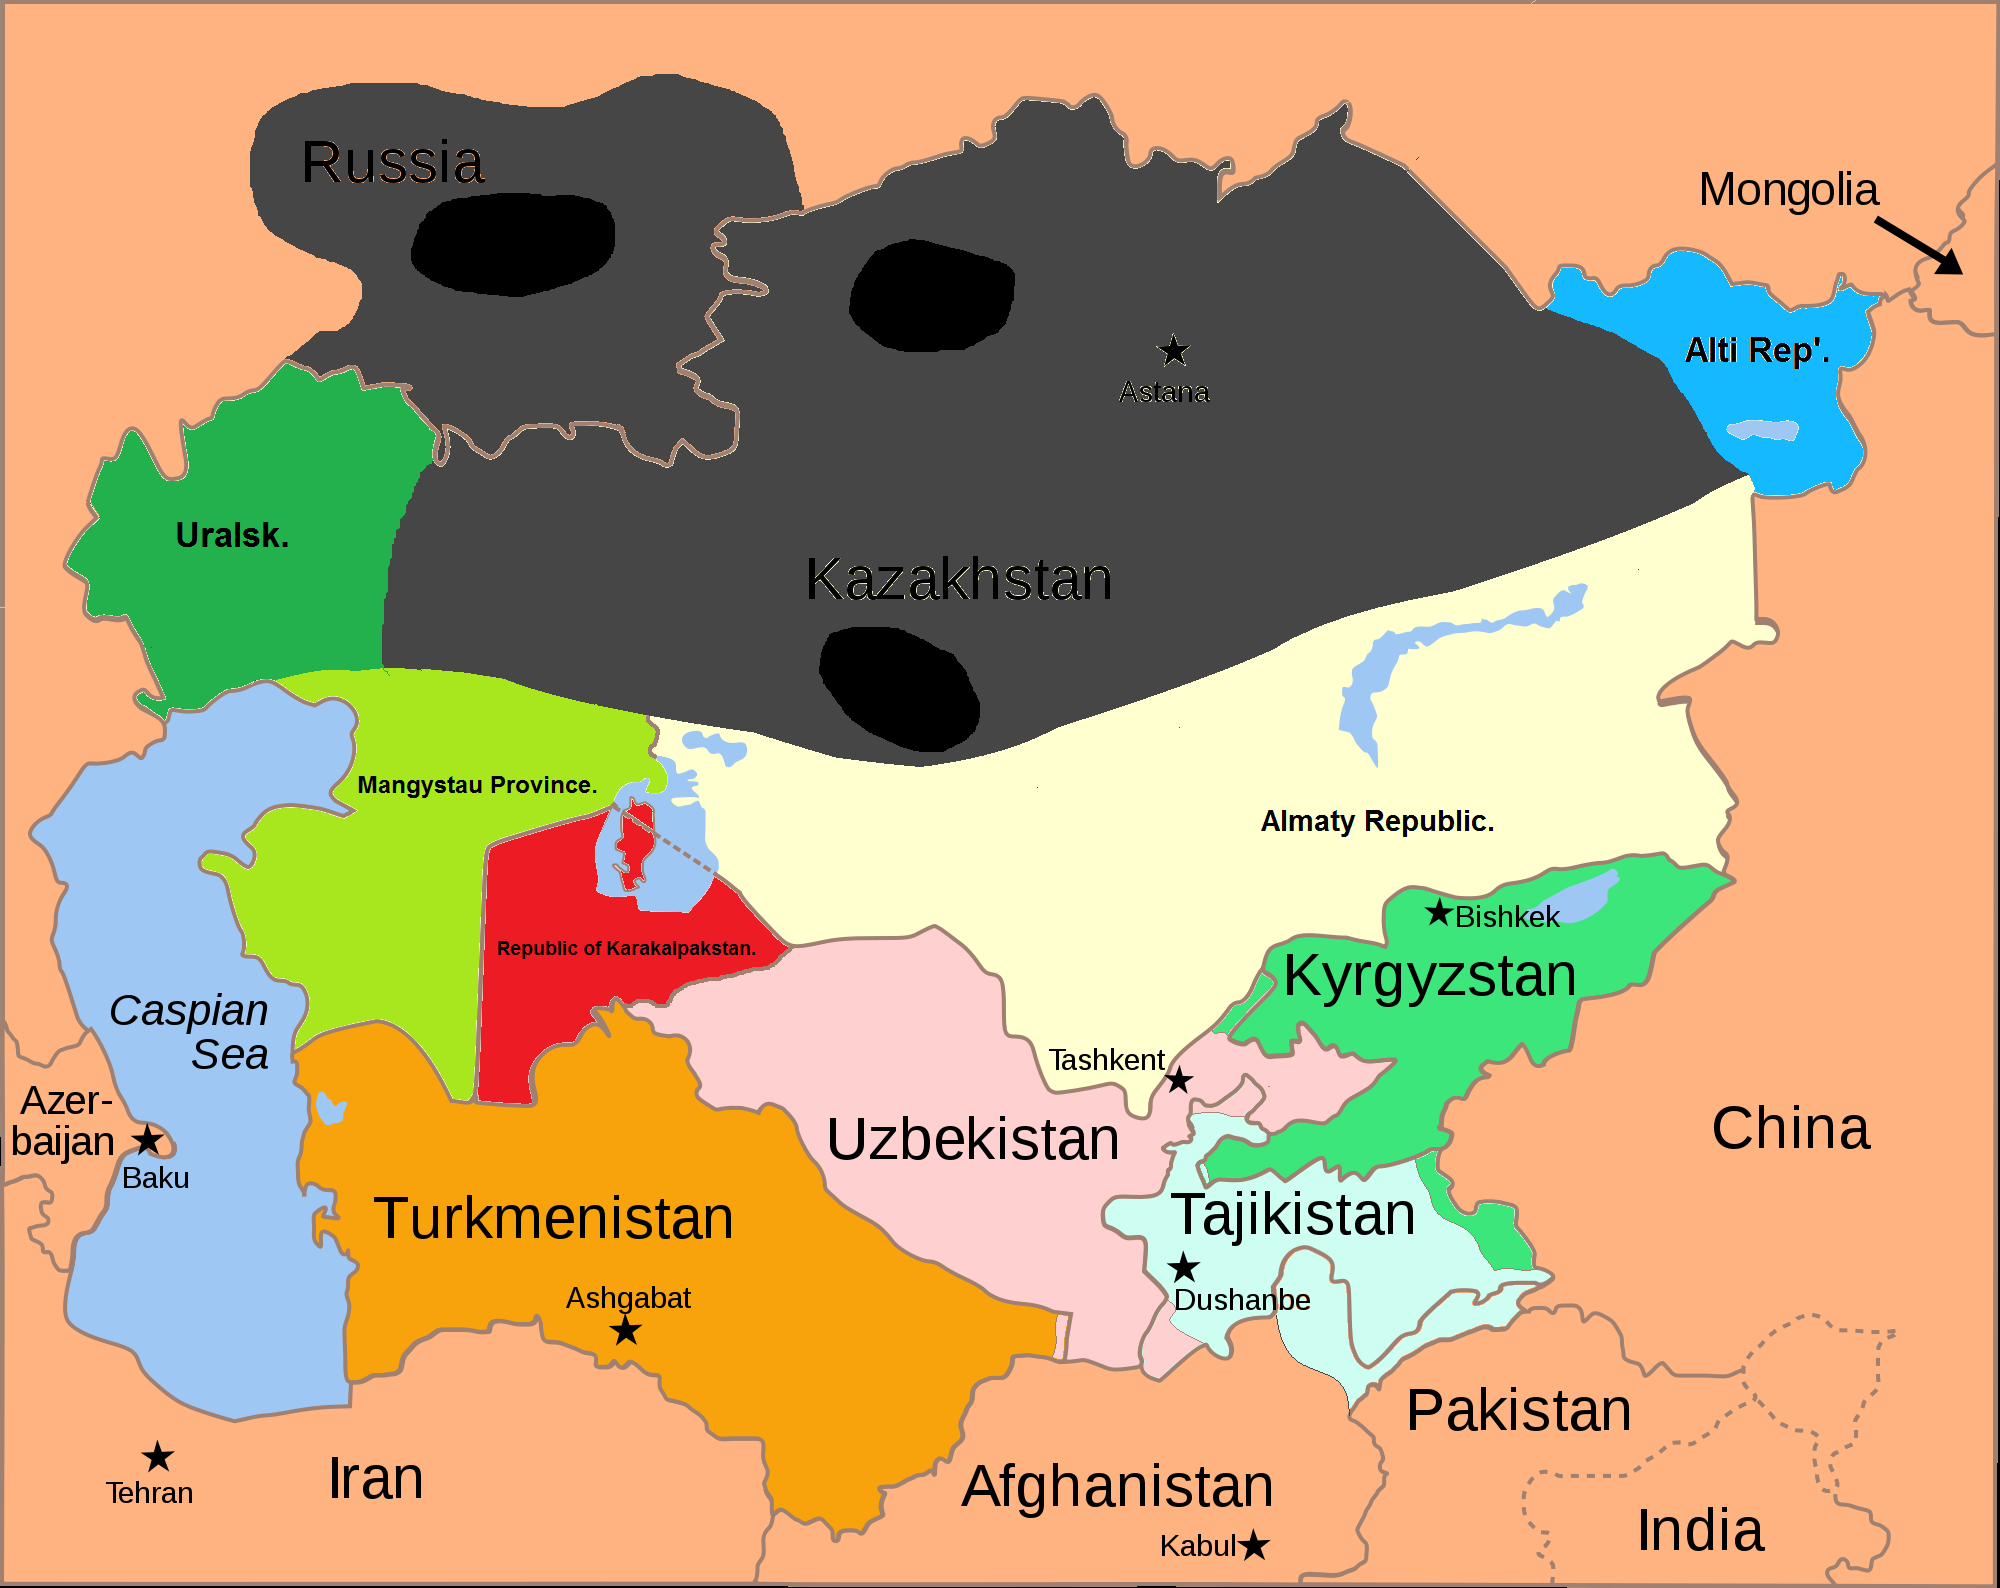 Image DD Central Asia Political Map Png Implausable - Central asia political map